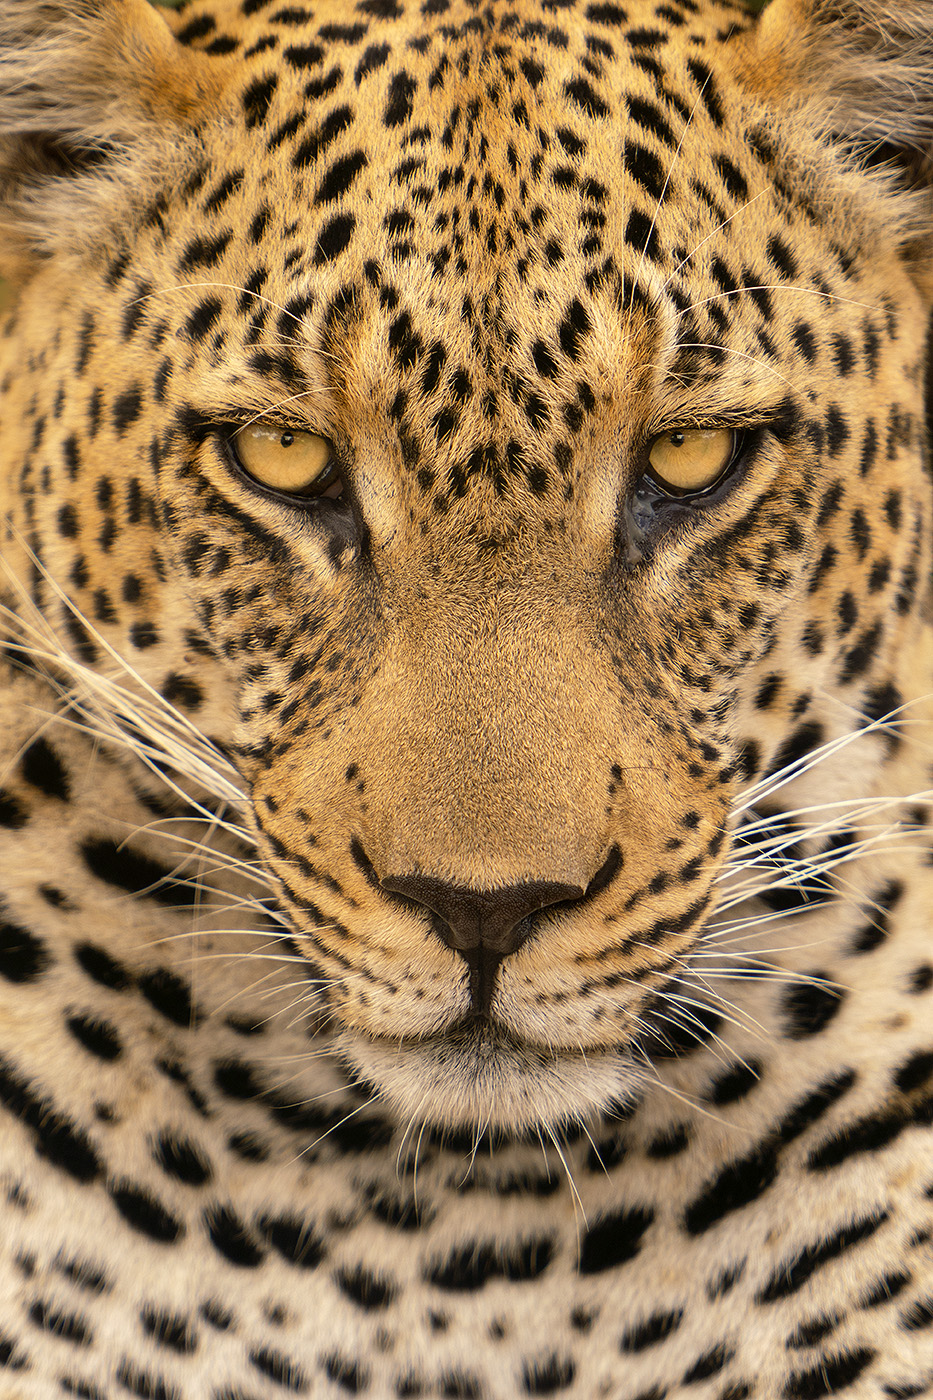 Face to face with a large male leopard.